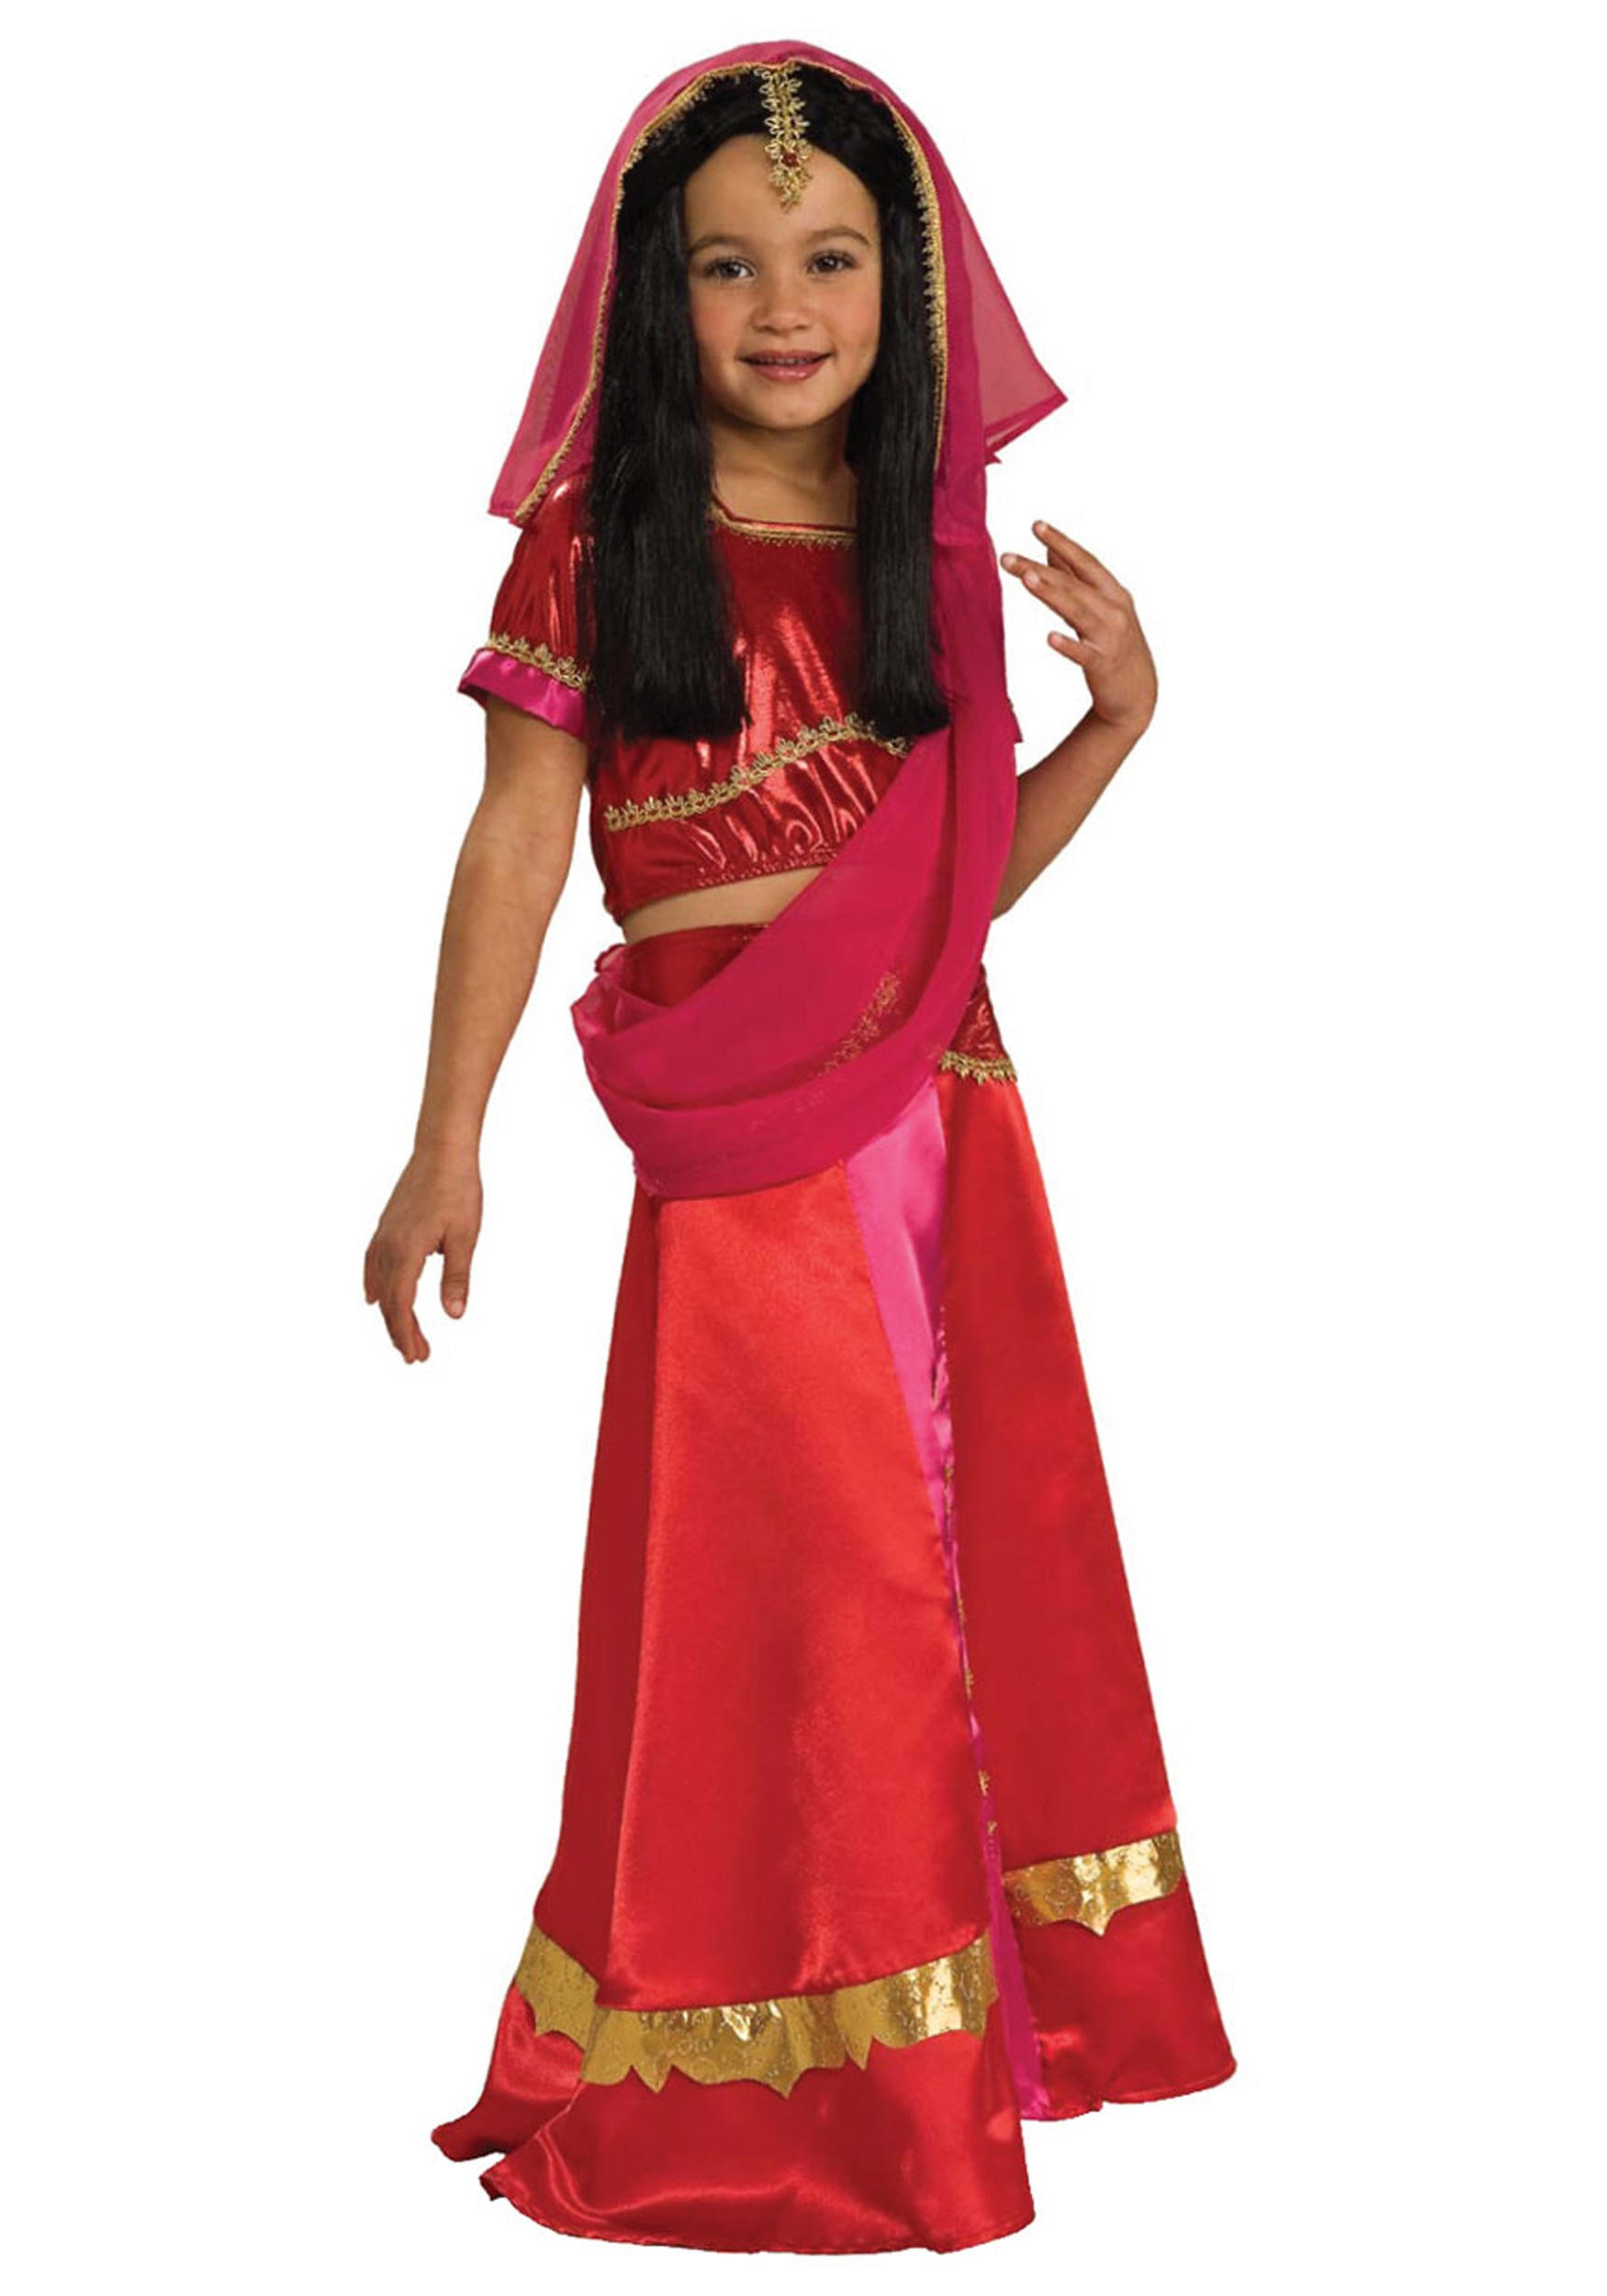 ... native indian warrior kids costume · s bollywood princess costume ...  sc 1 st  Best Kids Costumes & Indian Costumes Kids - Best Kids Costumes